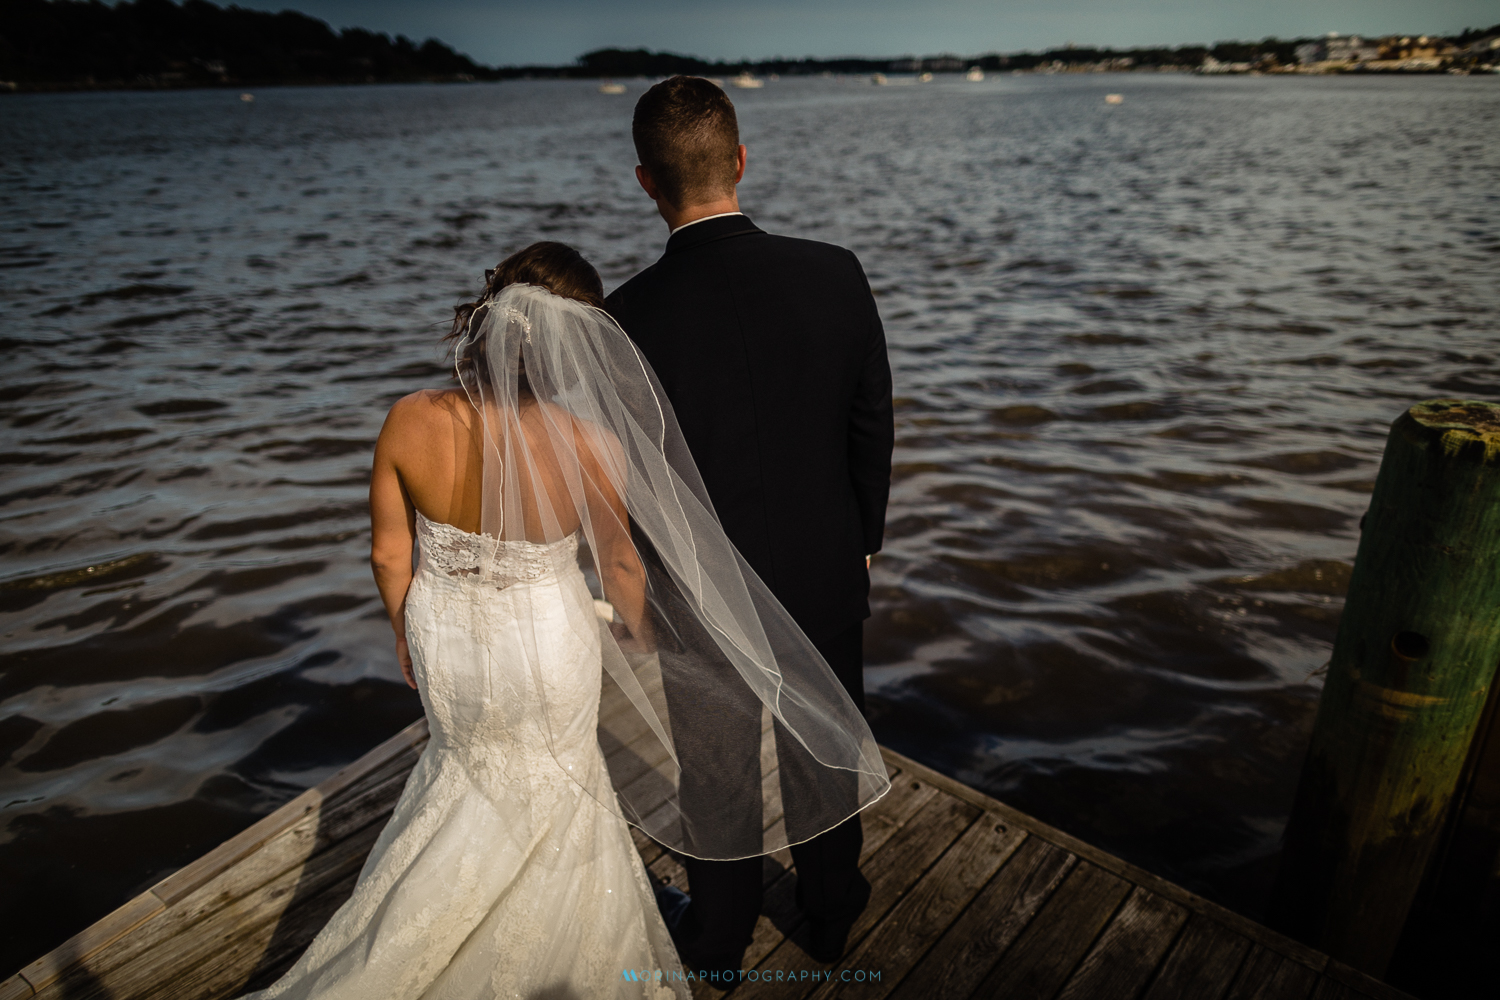 Amanda & Austin wedding at Crystal Point Yacht Club 55.jpg